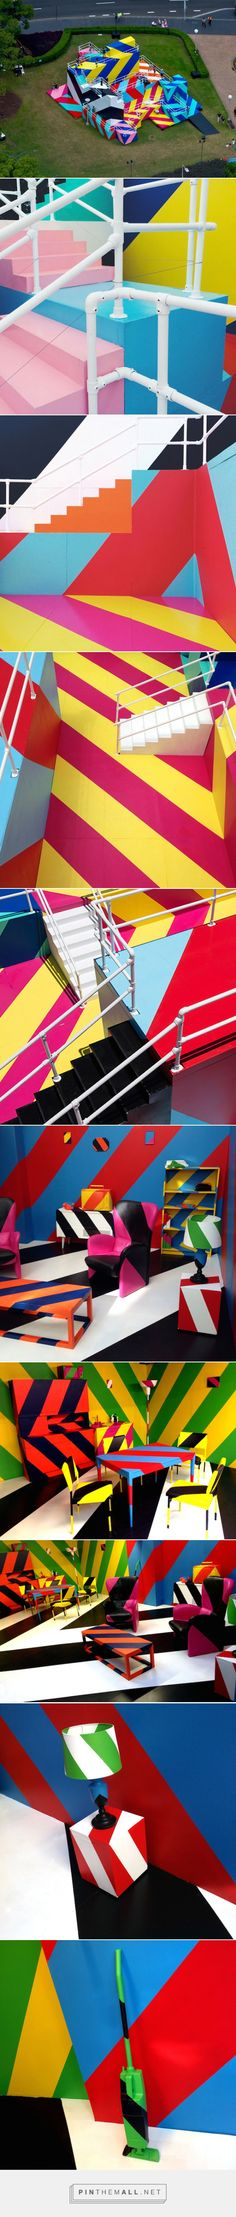 Colorful Labyrinth for the Sydney Festival – Fubiz™ - created via http://pinthemall.net